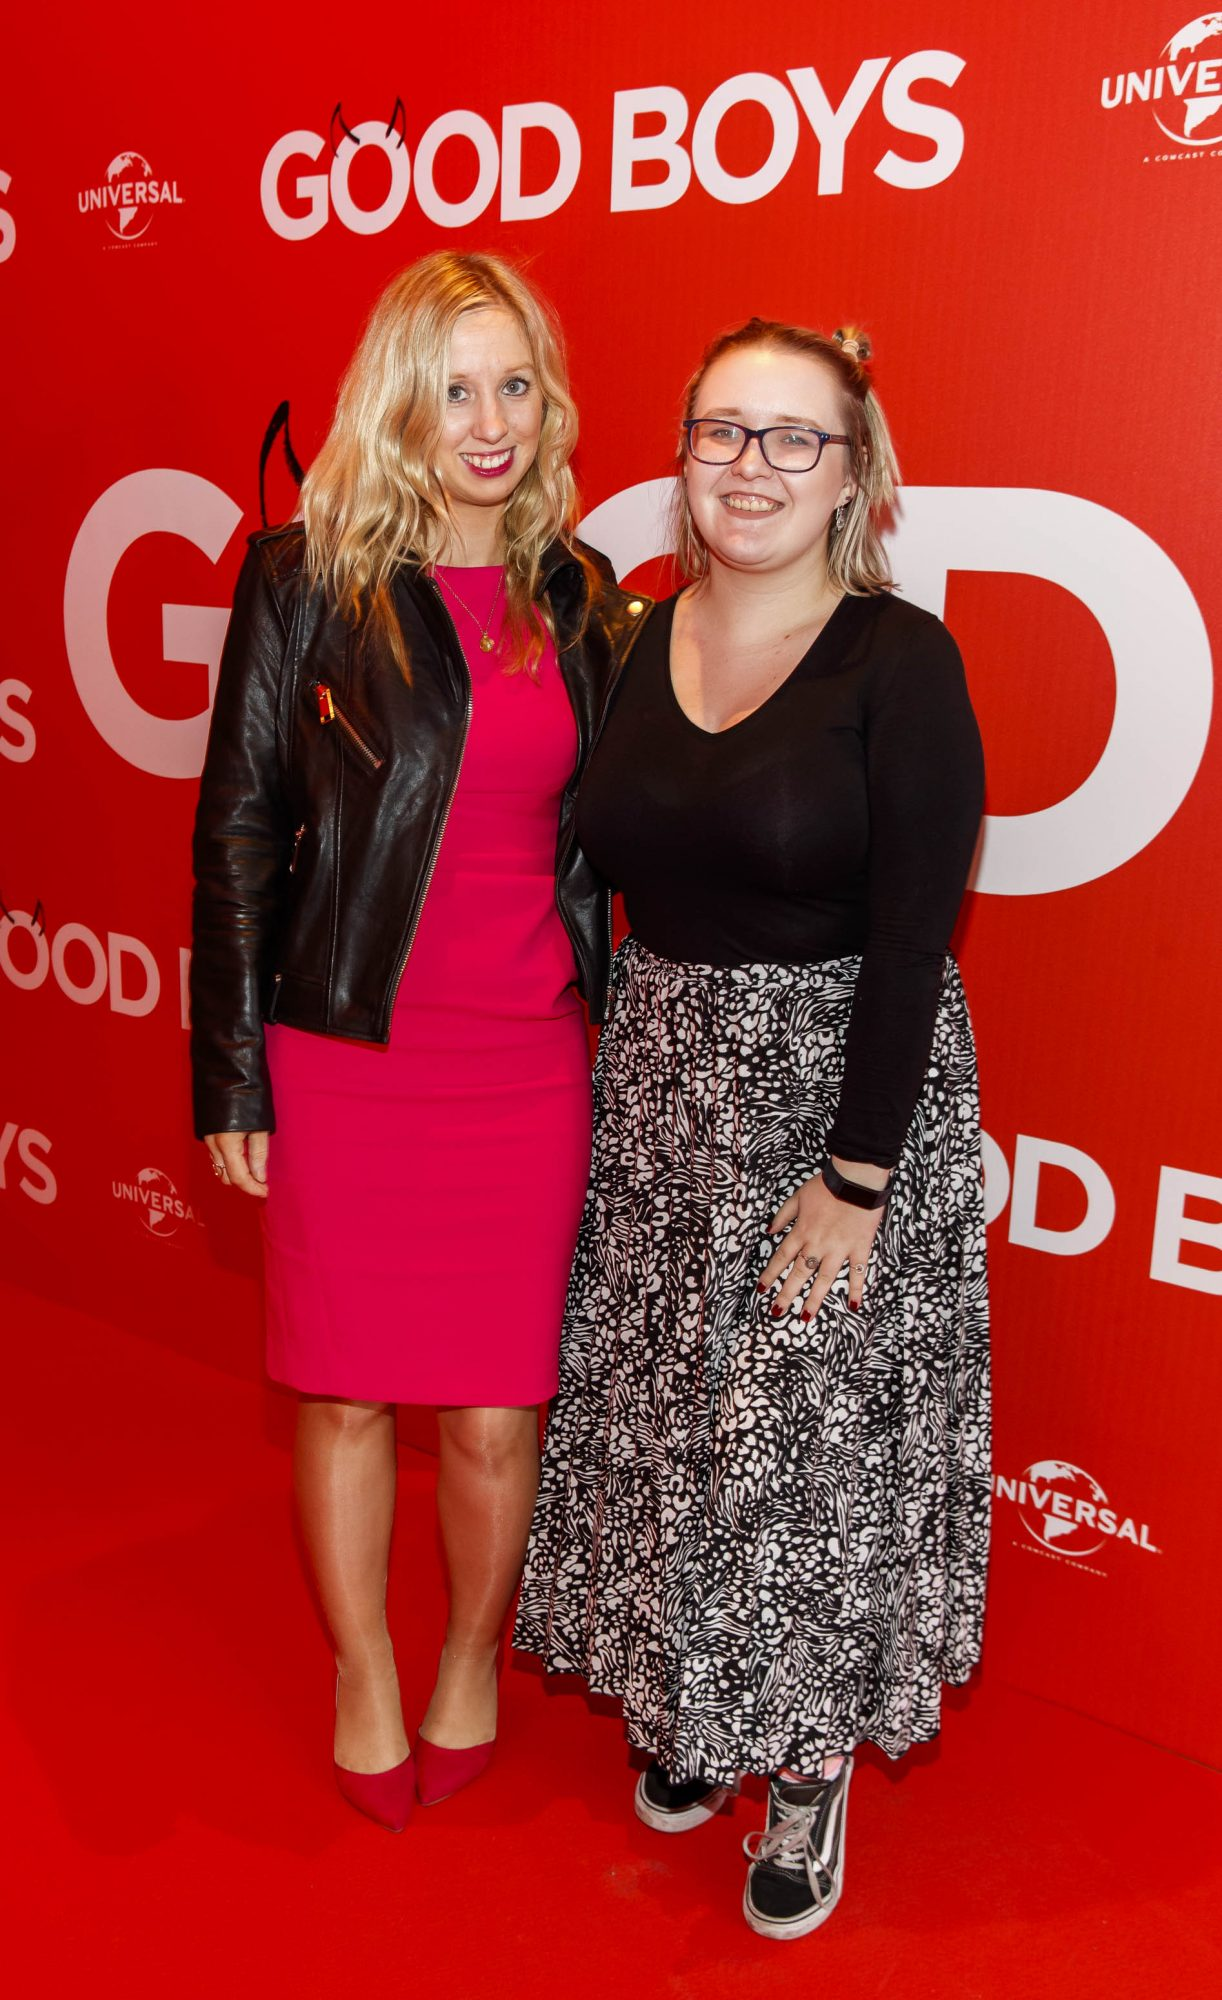 Claire Hyland and Bromwyn O'Neill pictured at a special preview screening of Good Boys at the Light House Cinema, Dublin. Picture: Andres Poveda